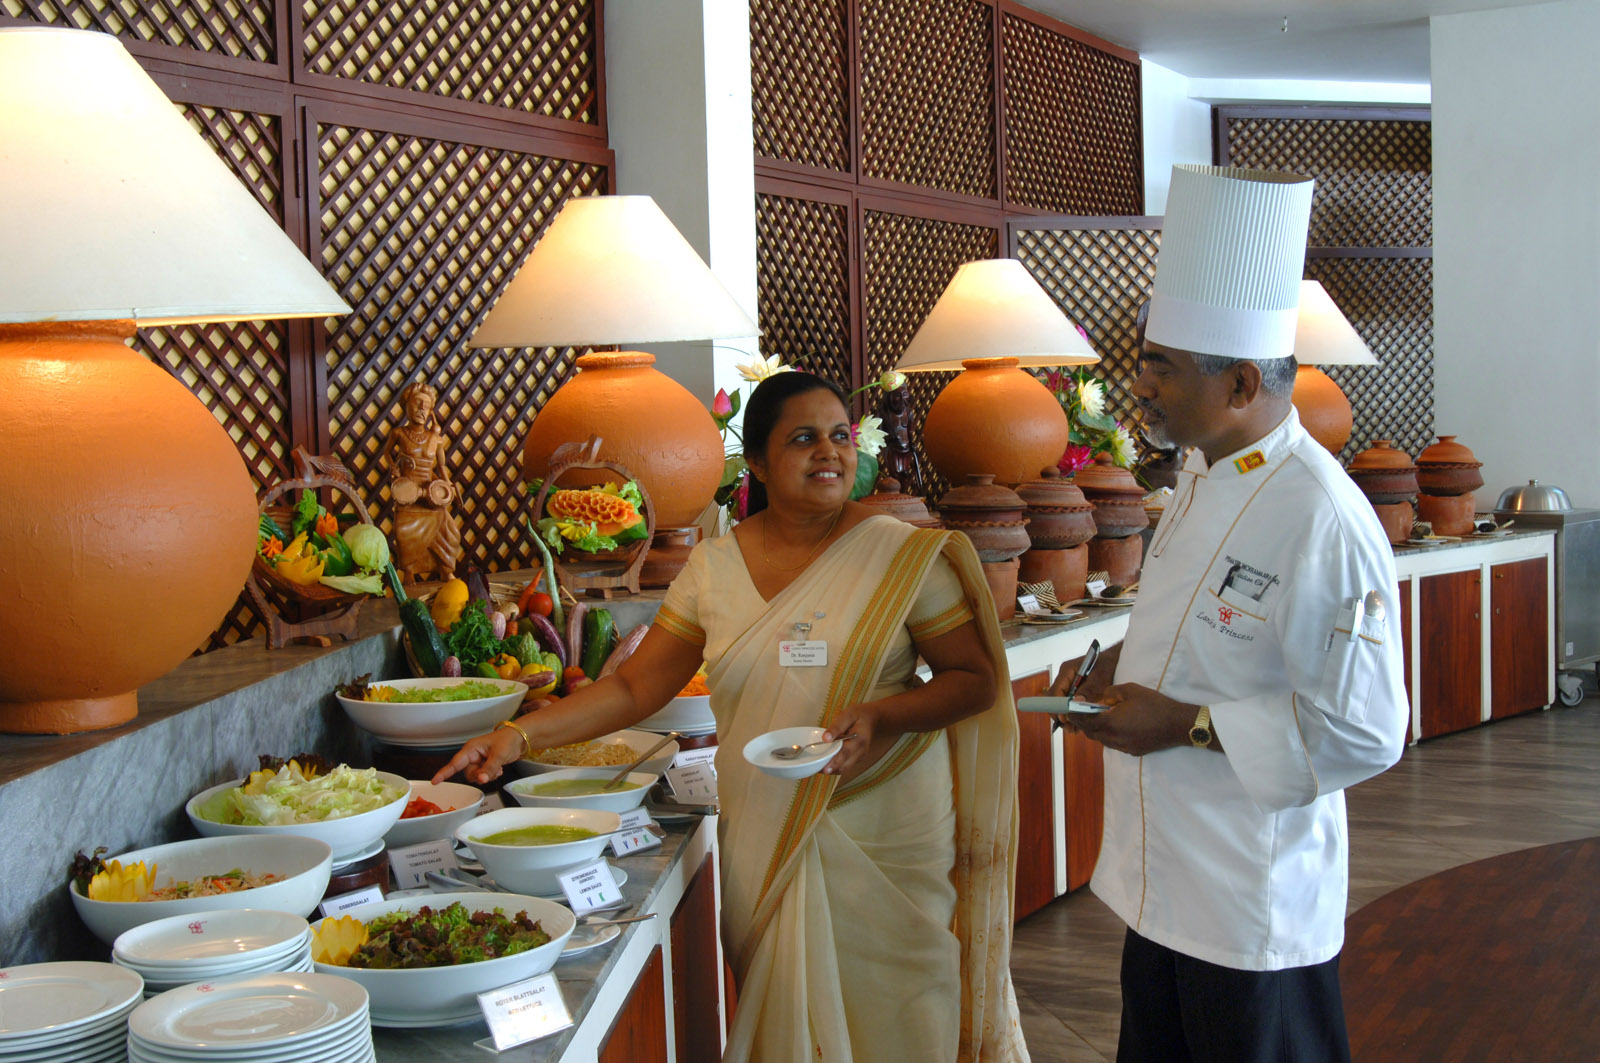 https://www.lankaprincess.com/wp-content/uploads/2014/12/Ayurveda-Restaurant-Lanka-Princess-New-batch-12-62.jpg